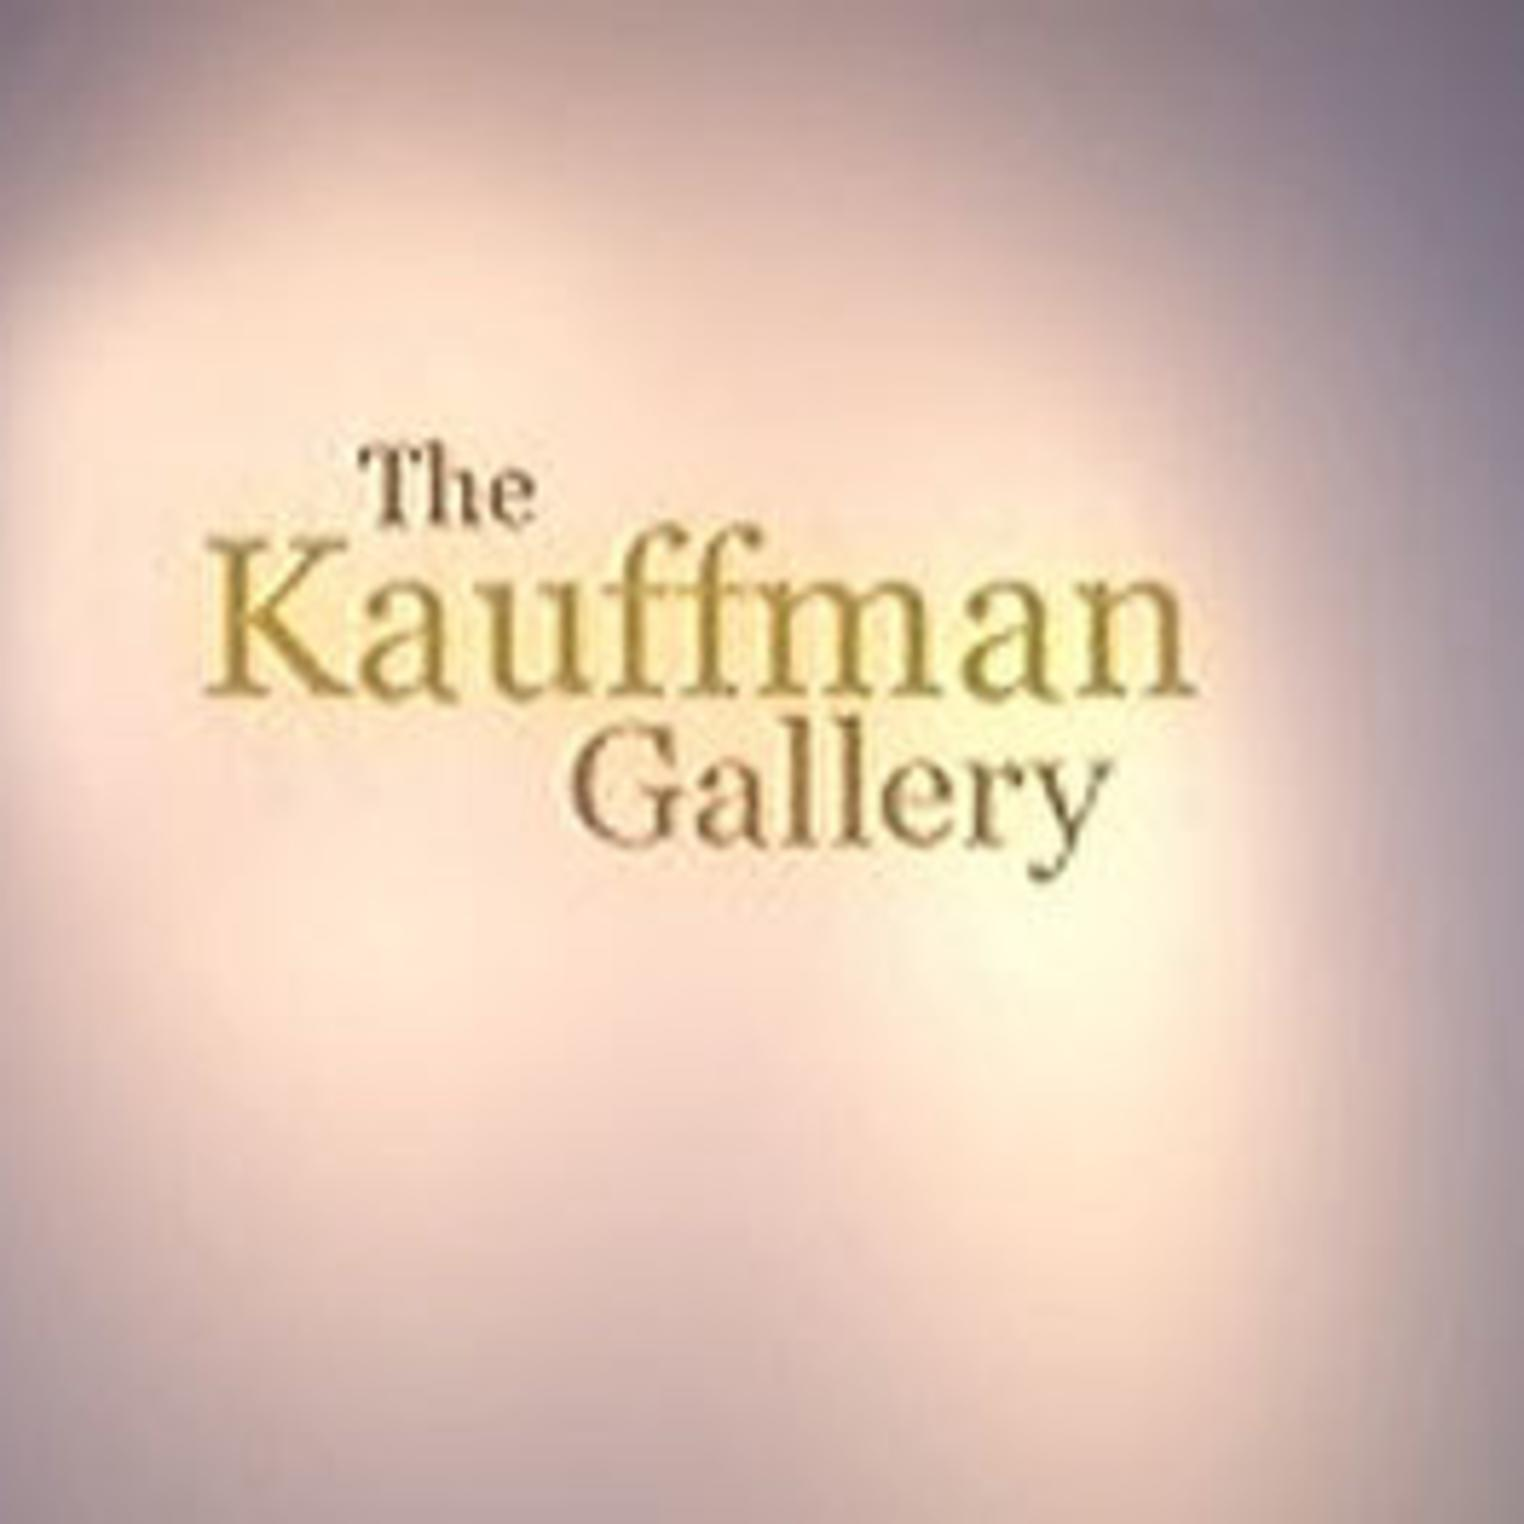 The Kauffman Gallery